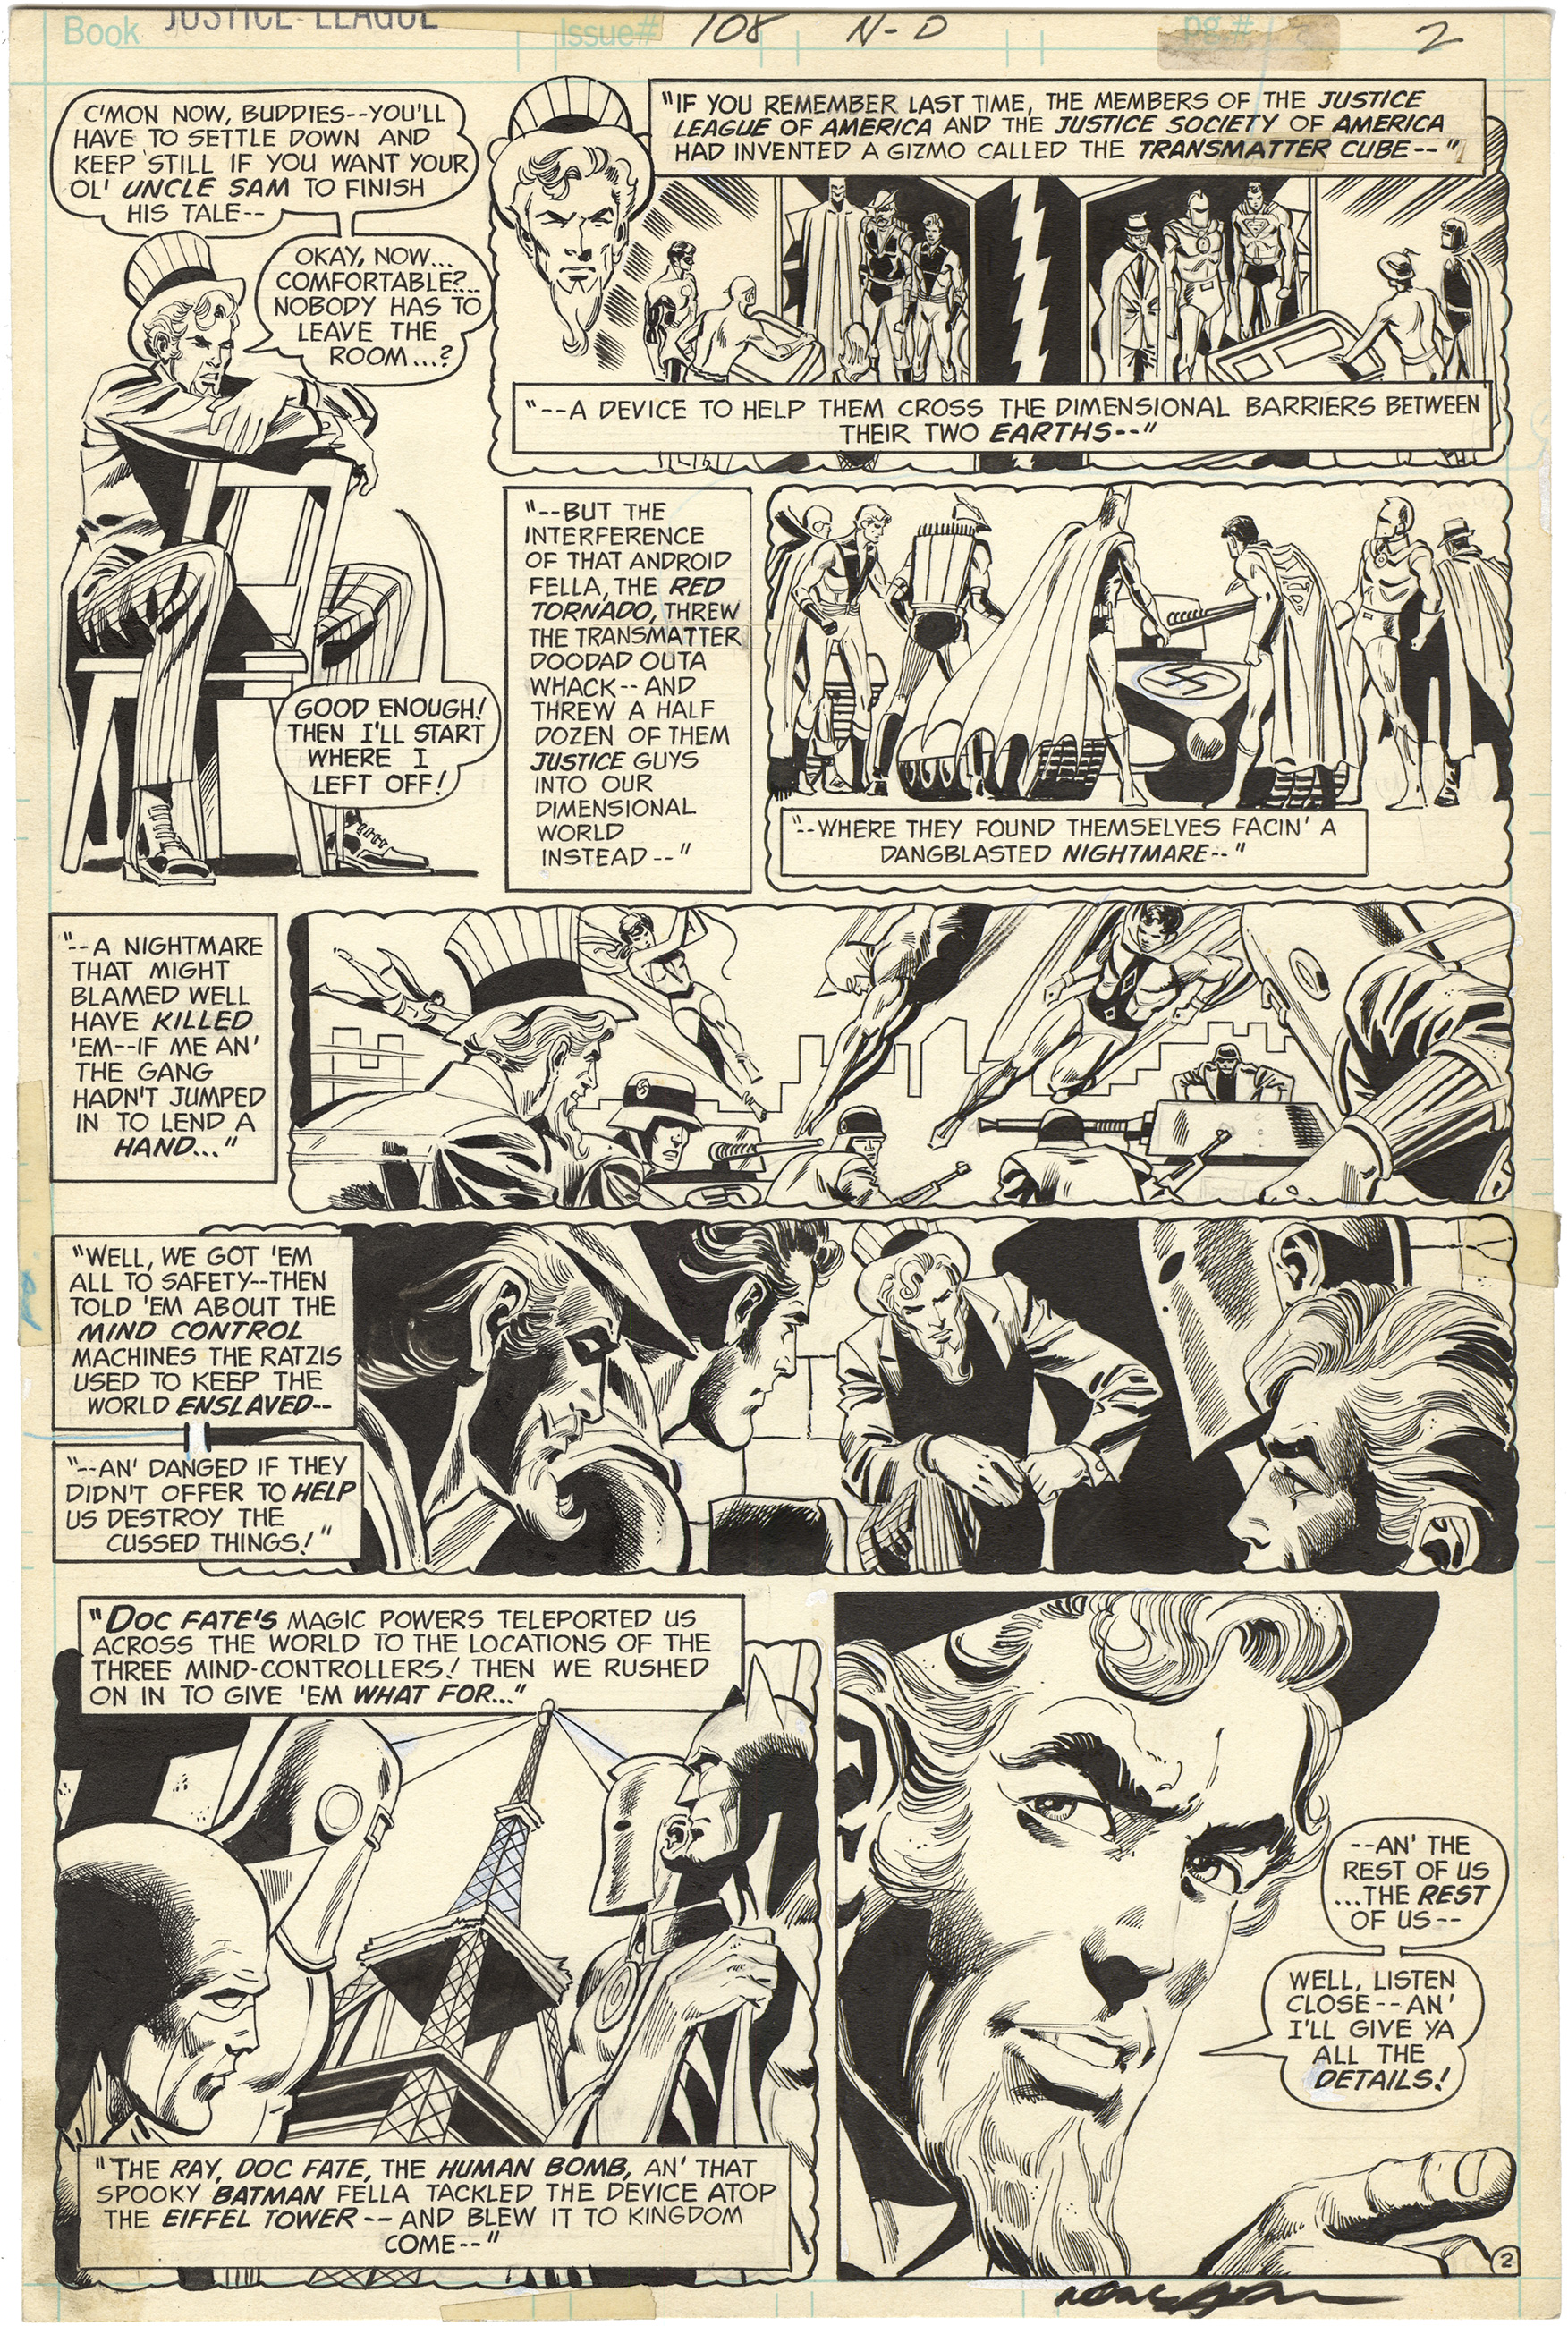 Justice League of America #108 p2 (Signed)